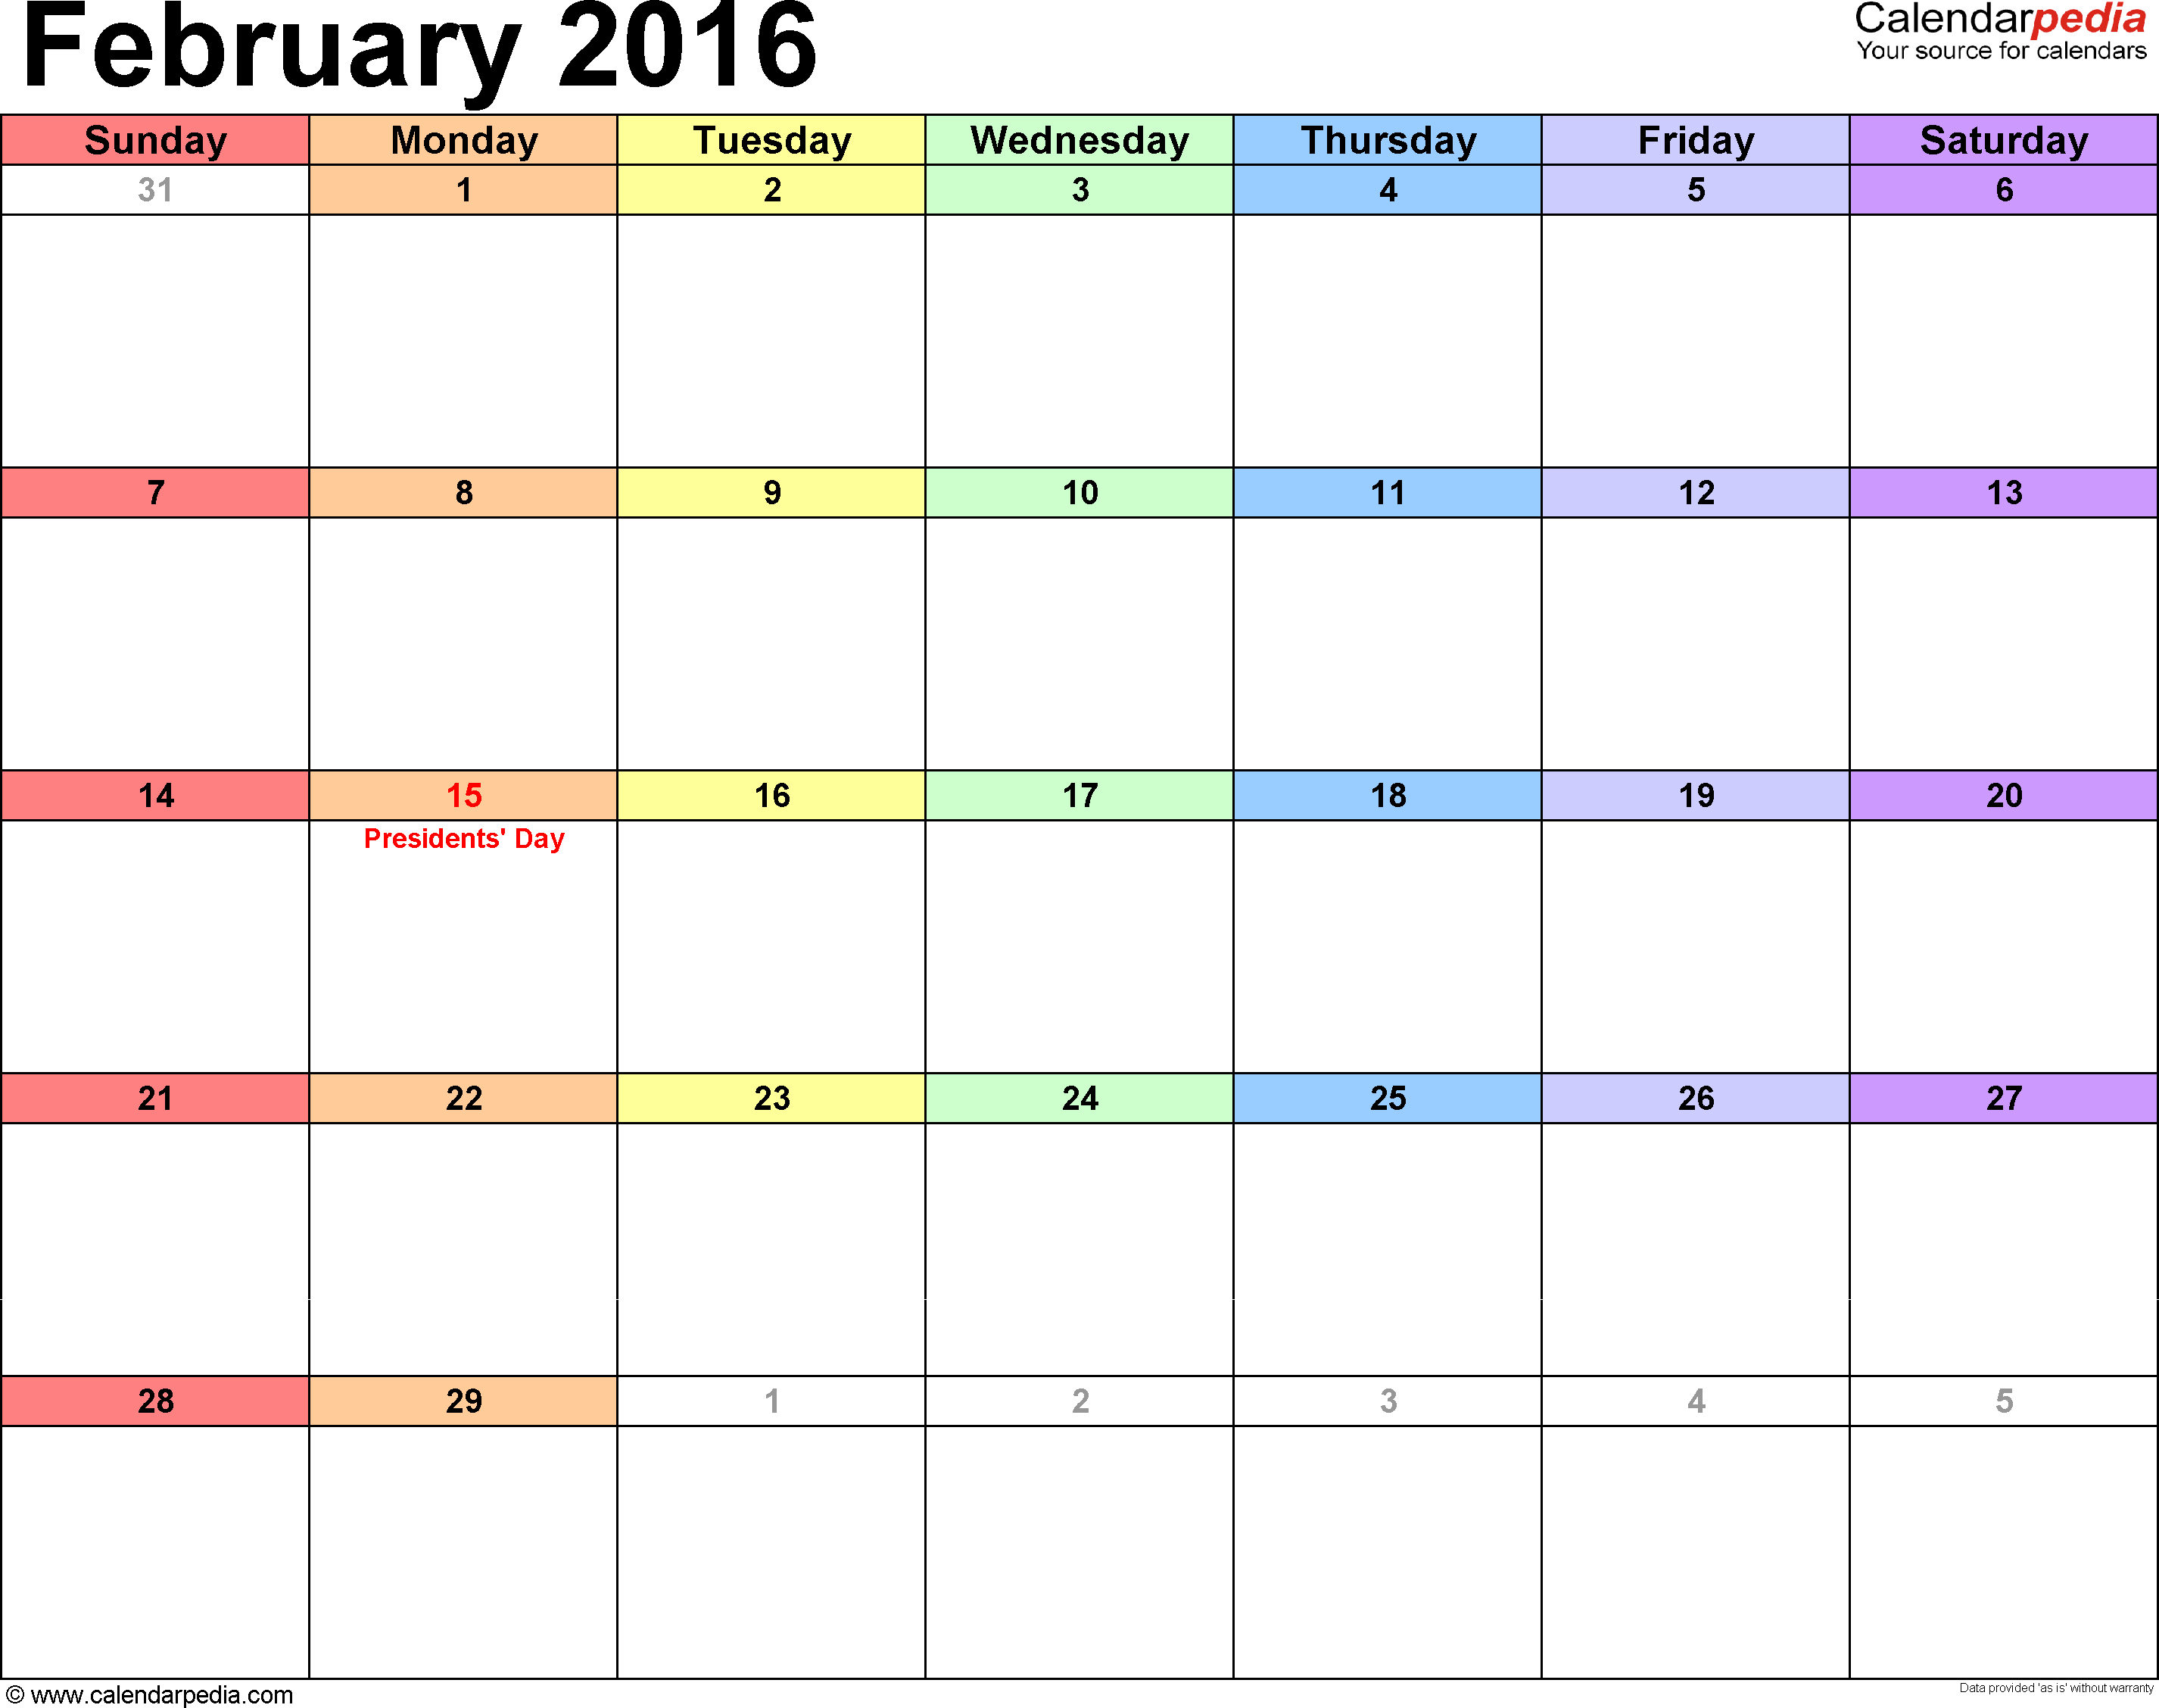 ... 2016 Calendar Template - February 2016 Calendars for Word, Excel & PDF